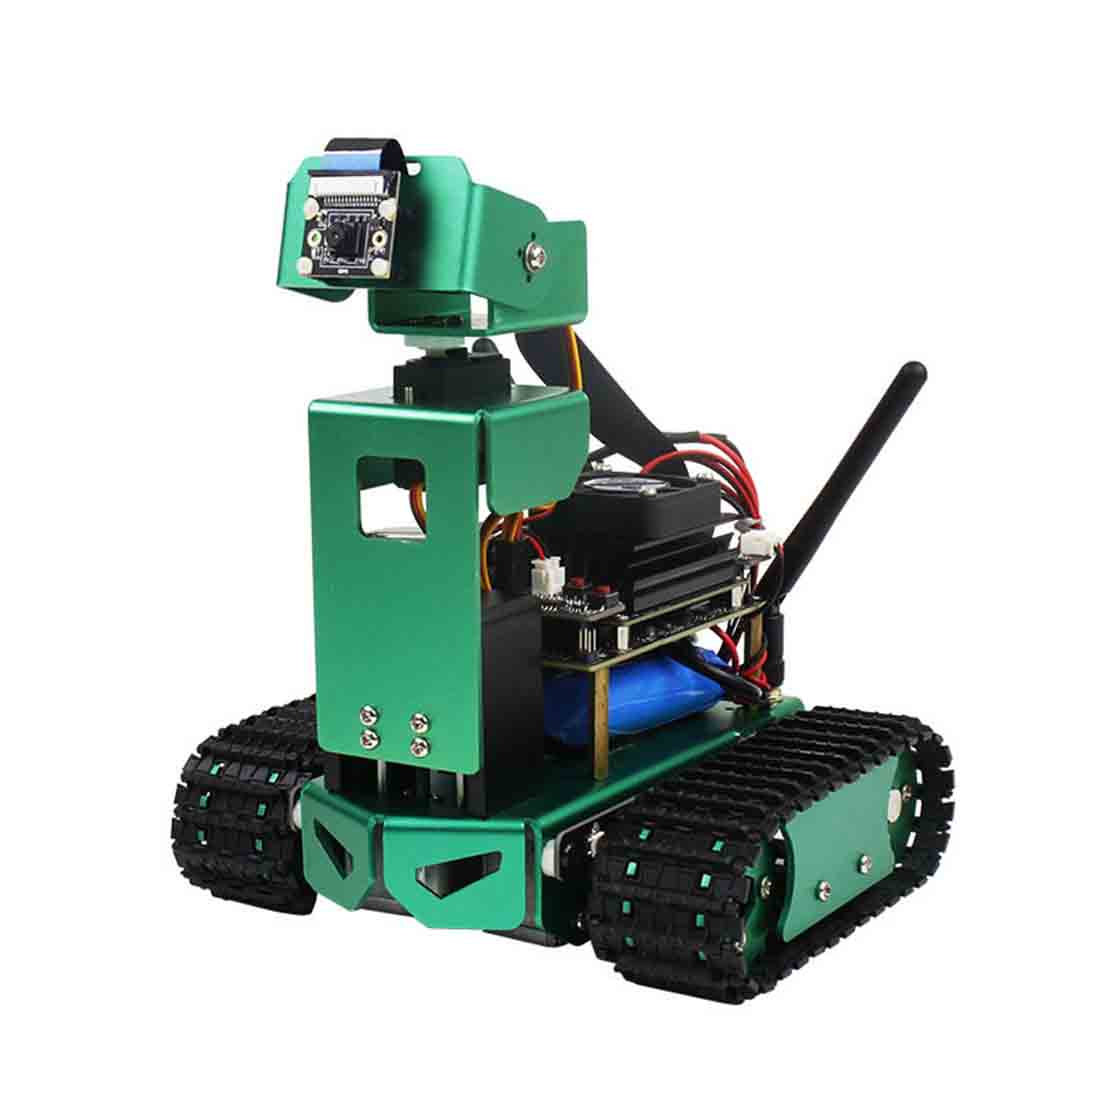 Artificial Intelligence Car DIY 2DOF Robot Car Kit With/Without Development Board For Jetson Nano (Fixed Height) For Child Toys